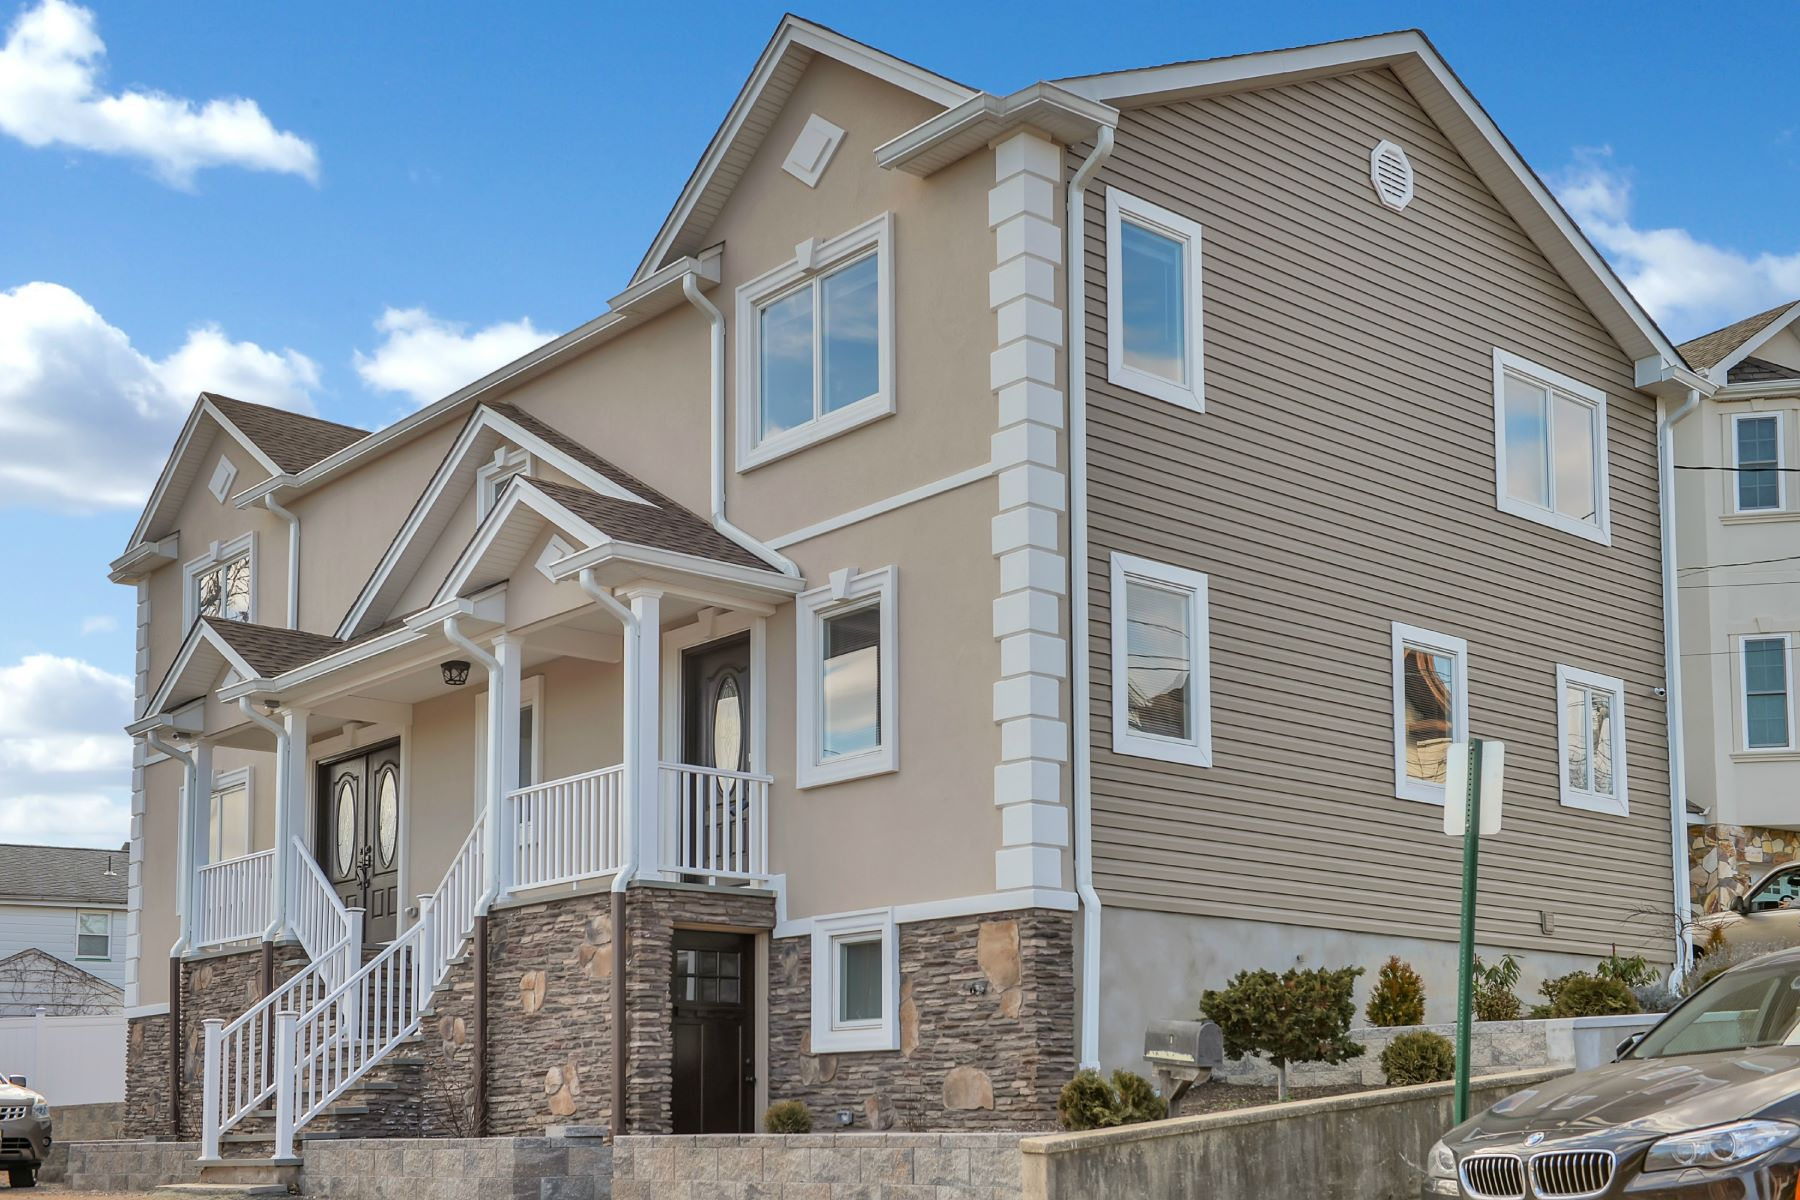 Duplex for Rent at Brand New 1/2 Duplex 410 Small St Carlstadt, New Jersey 07072 United States